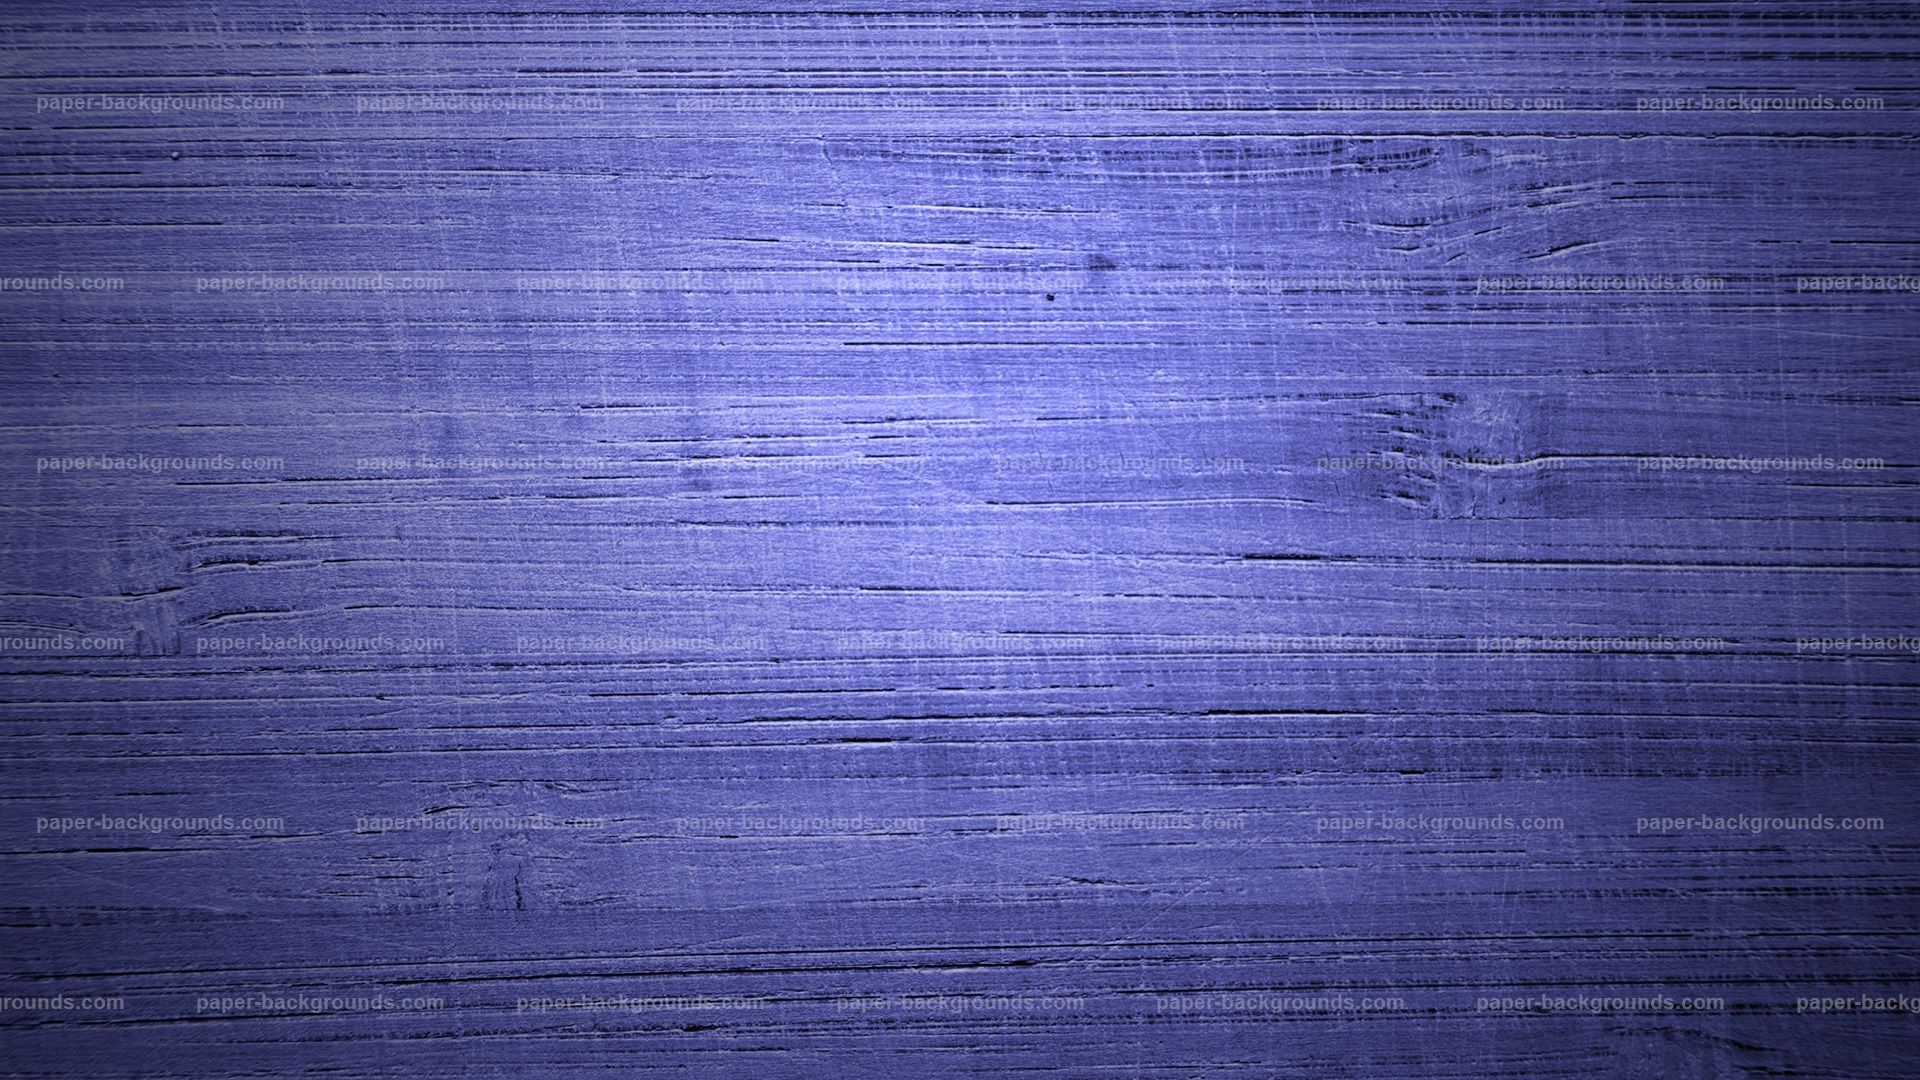 Blue Wood Wood Blue Illicit Texture Backgrounds Pictures